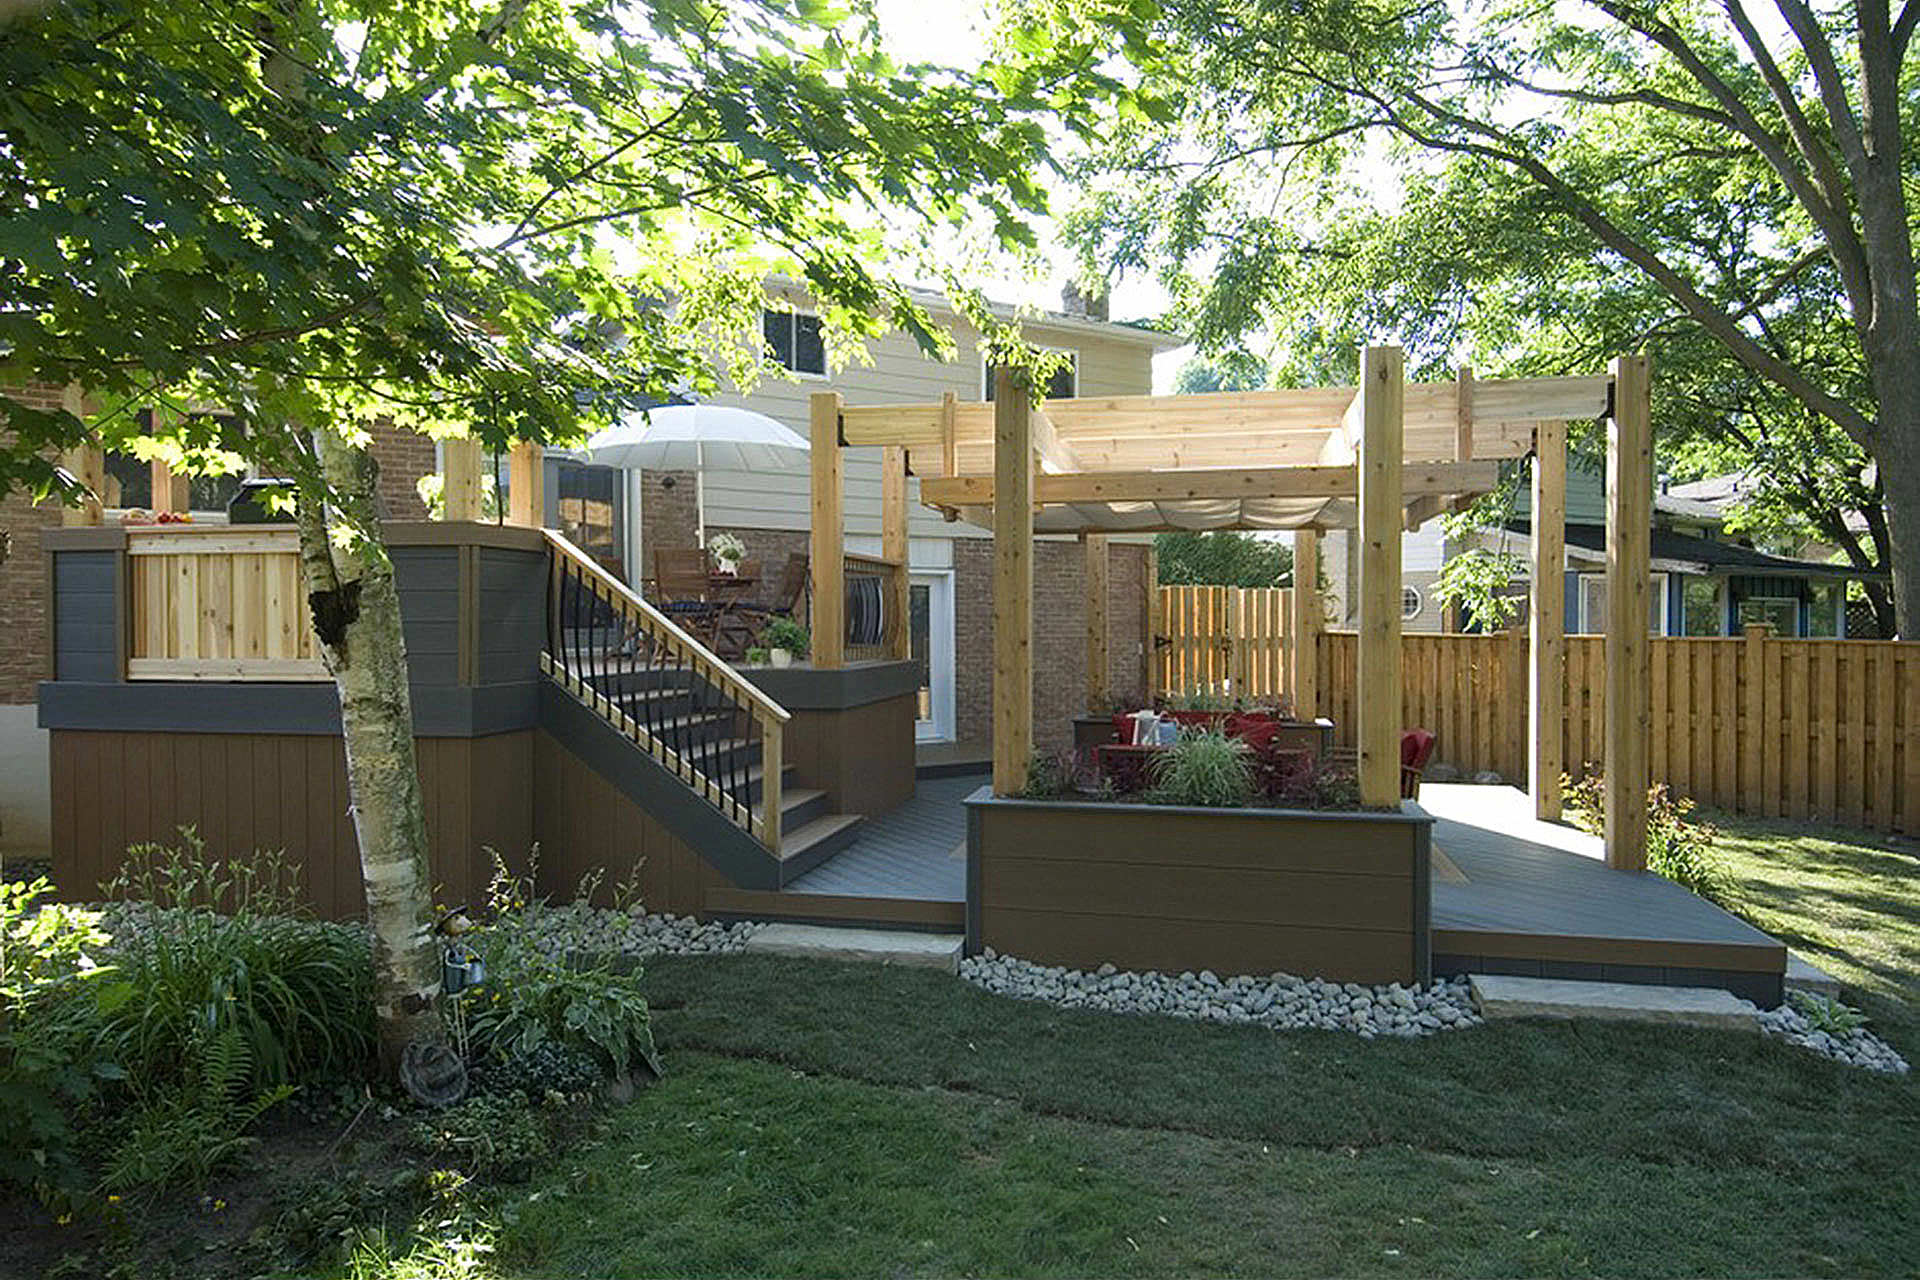 3 Ways to Add Privacy to Your Outdoor Space